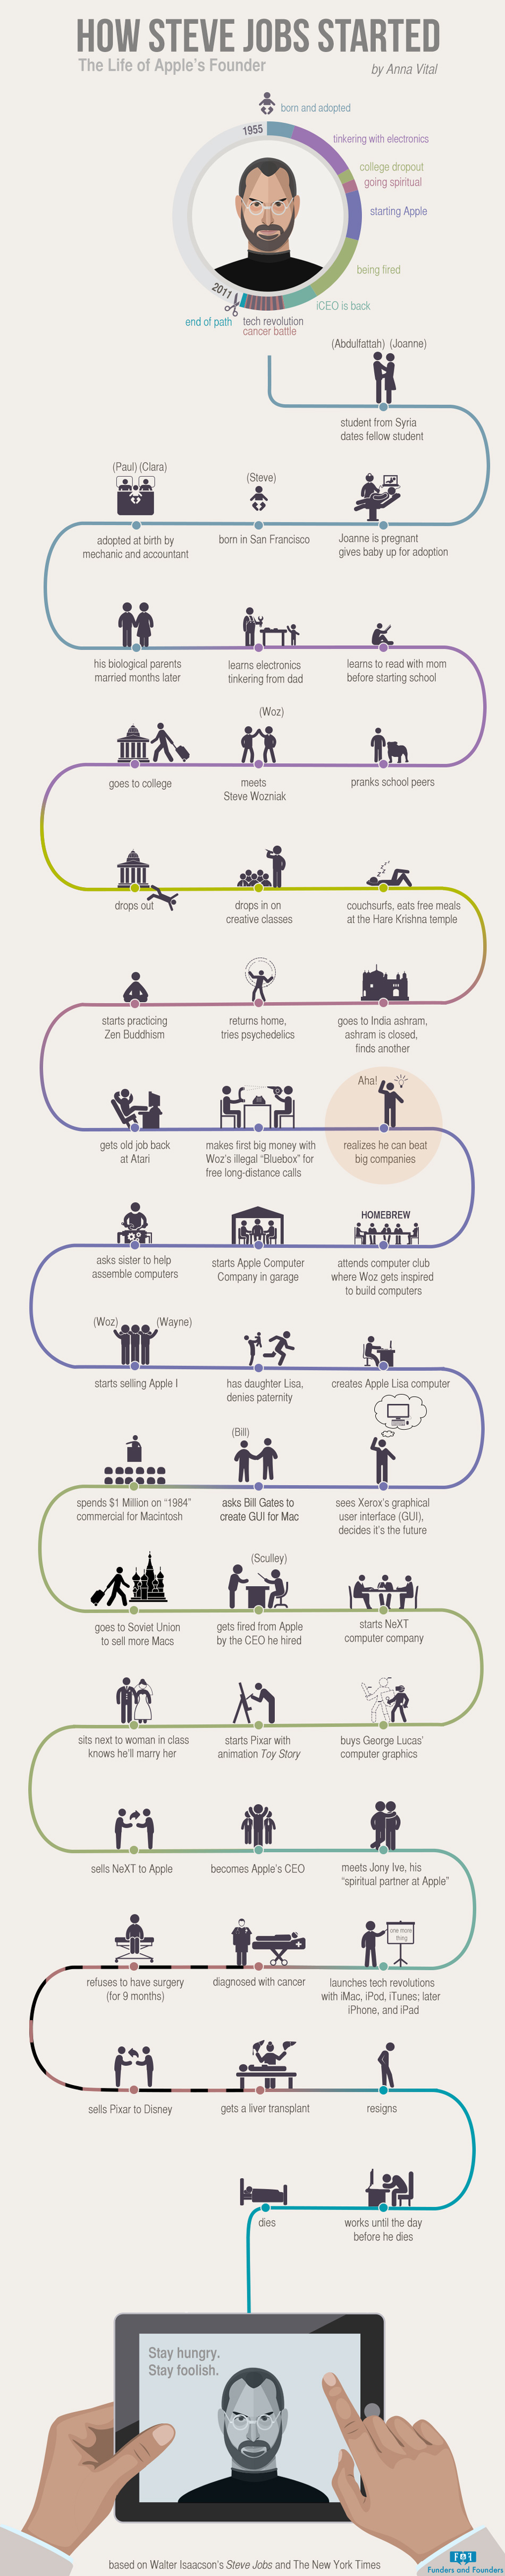 How Steve Jobs Started The Life Of Visionary Genius Infographic